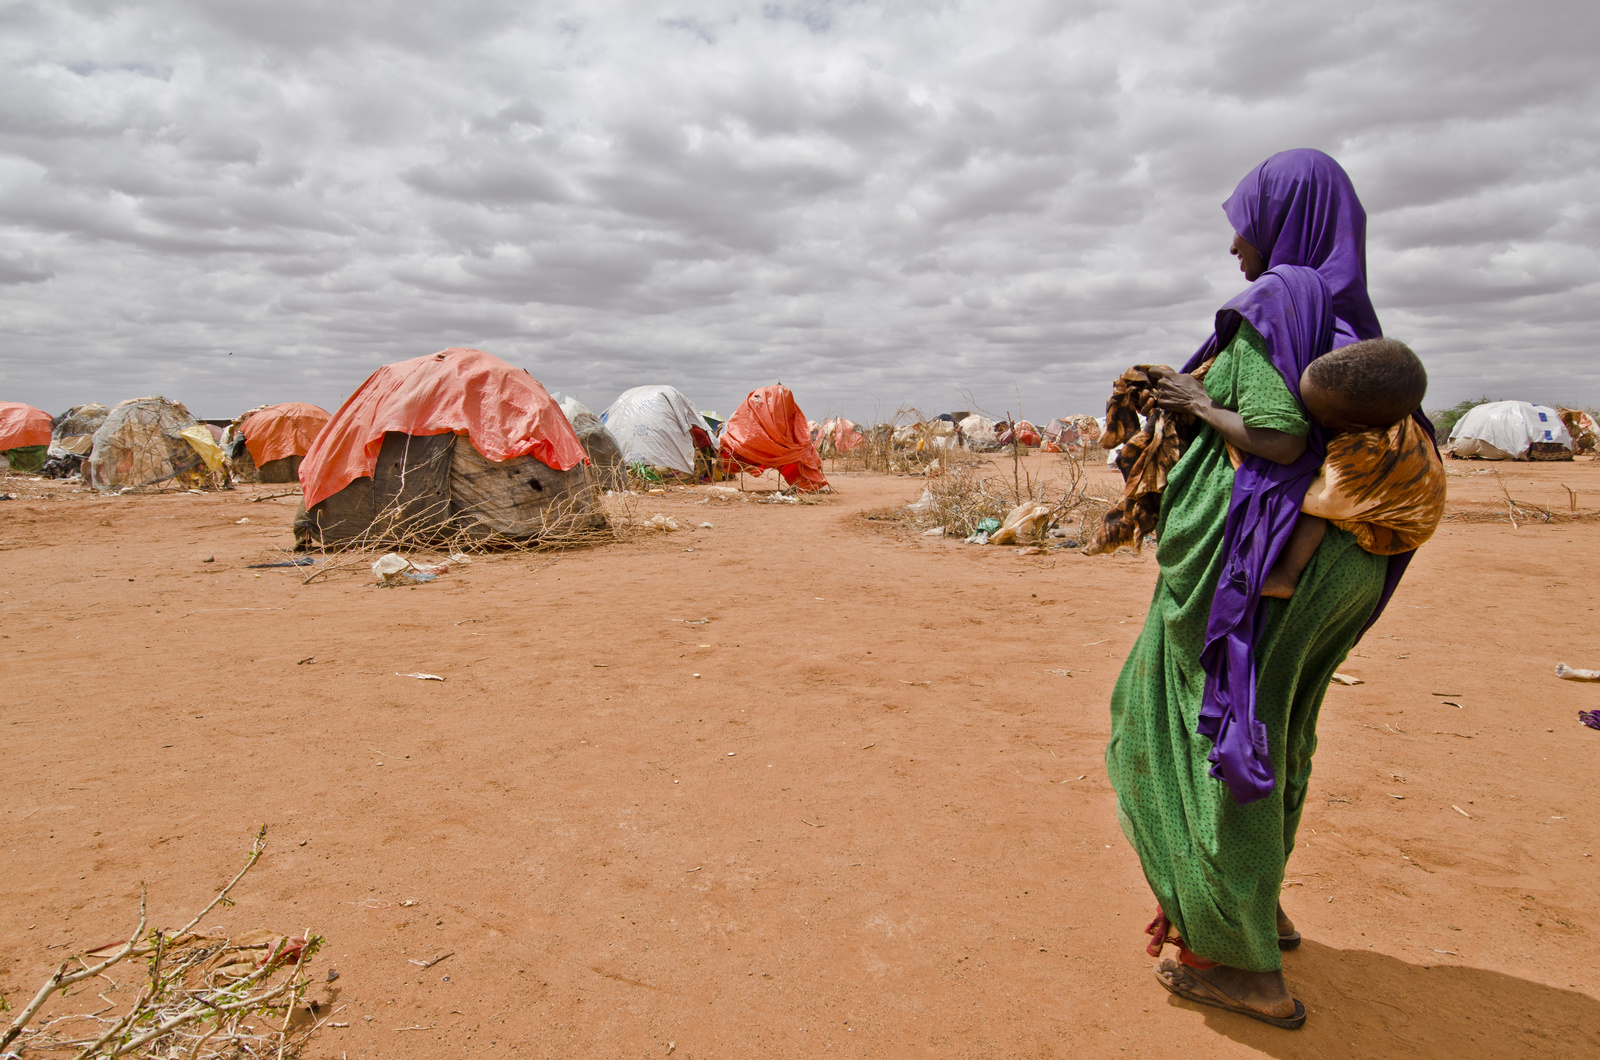 Displaced Somali woman with her baby on her back looking into the horizon strewn with make-shift shelters.